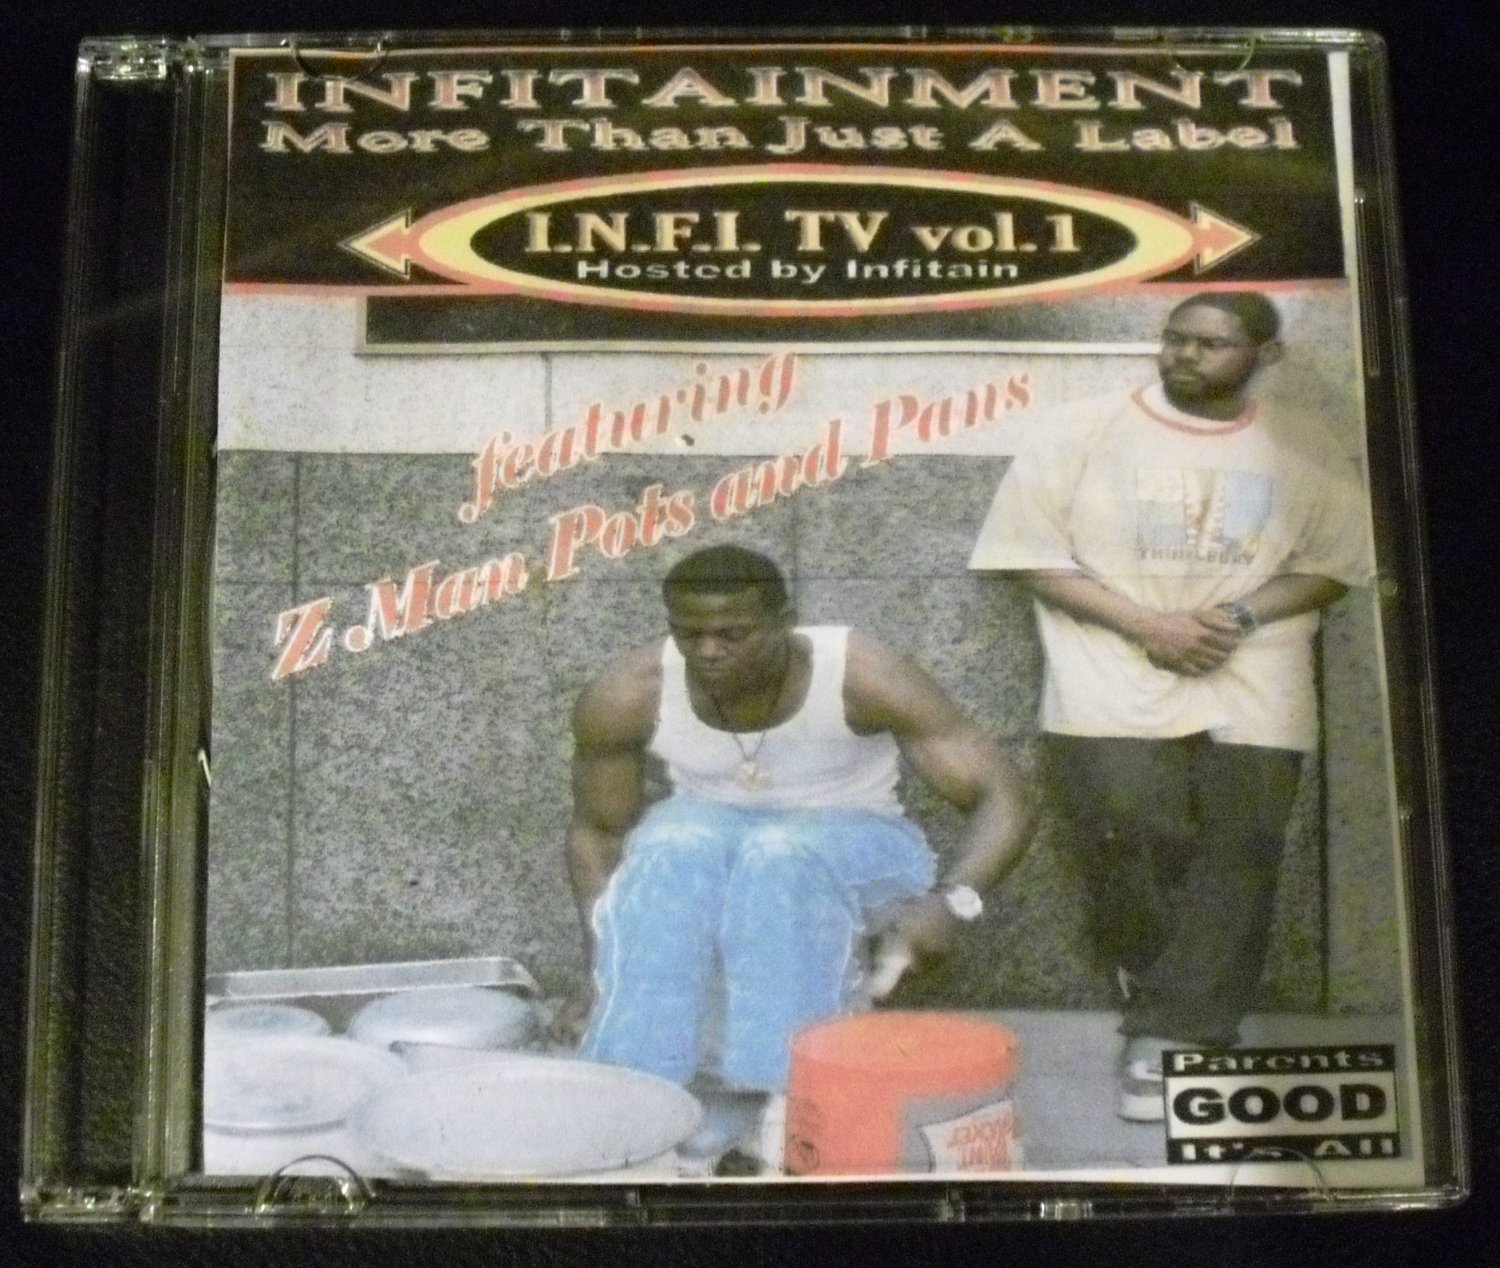 I.N.F.I TV vol 1 featuring Z Man Pots and Pans (Audio CD)